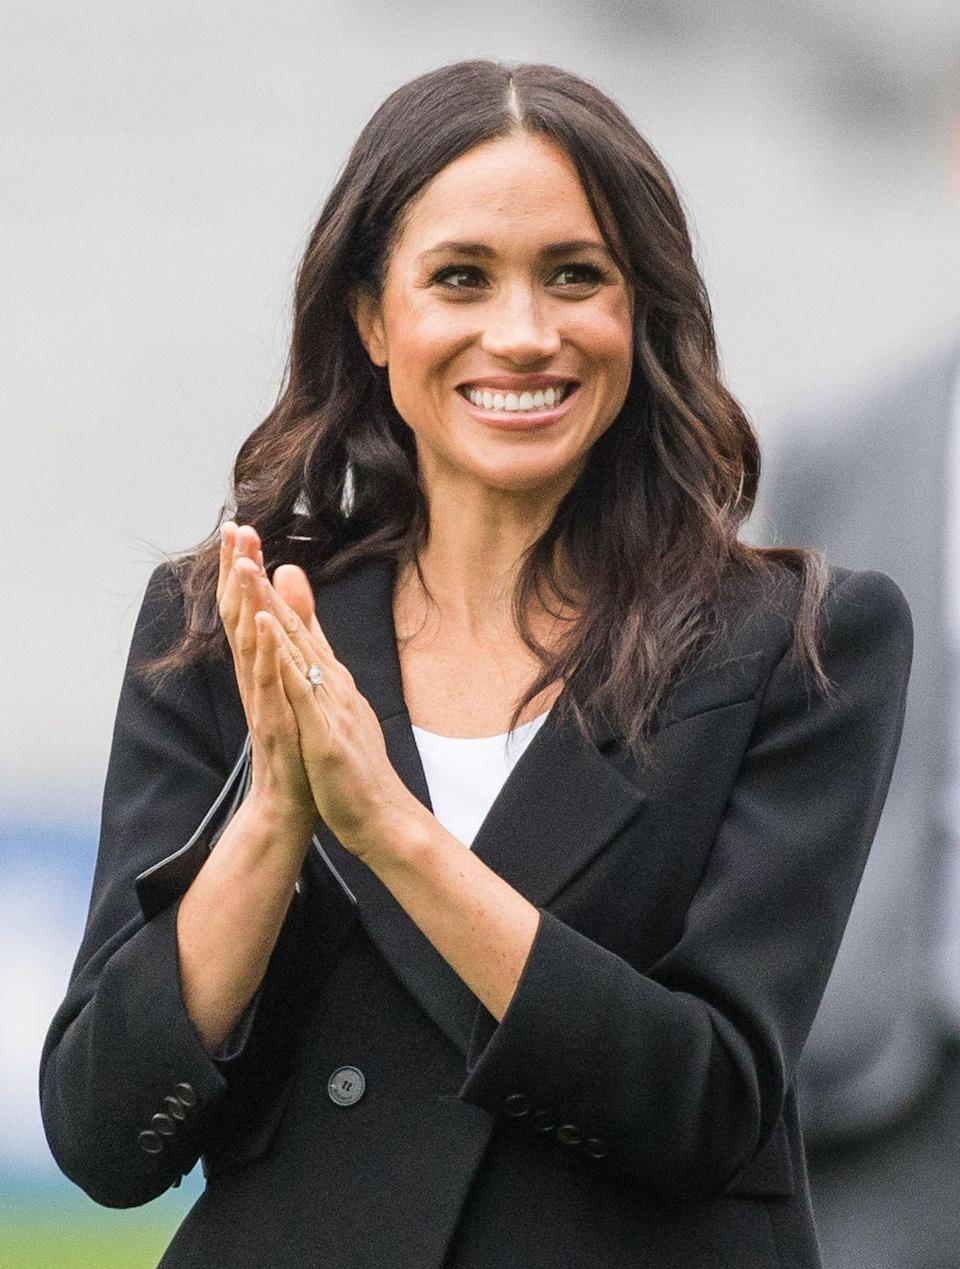 <p>Nearly-beachy waves and curls have become one of Markle's signature styles.</p>